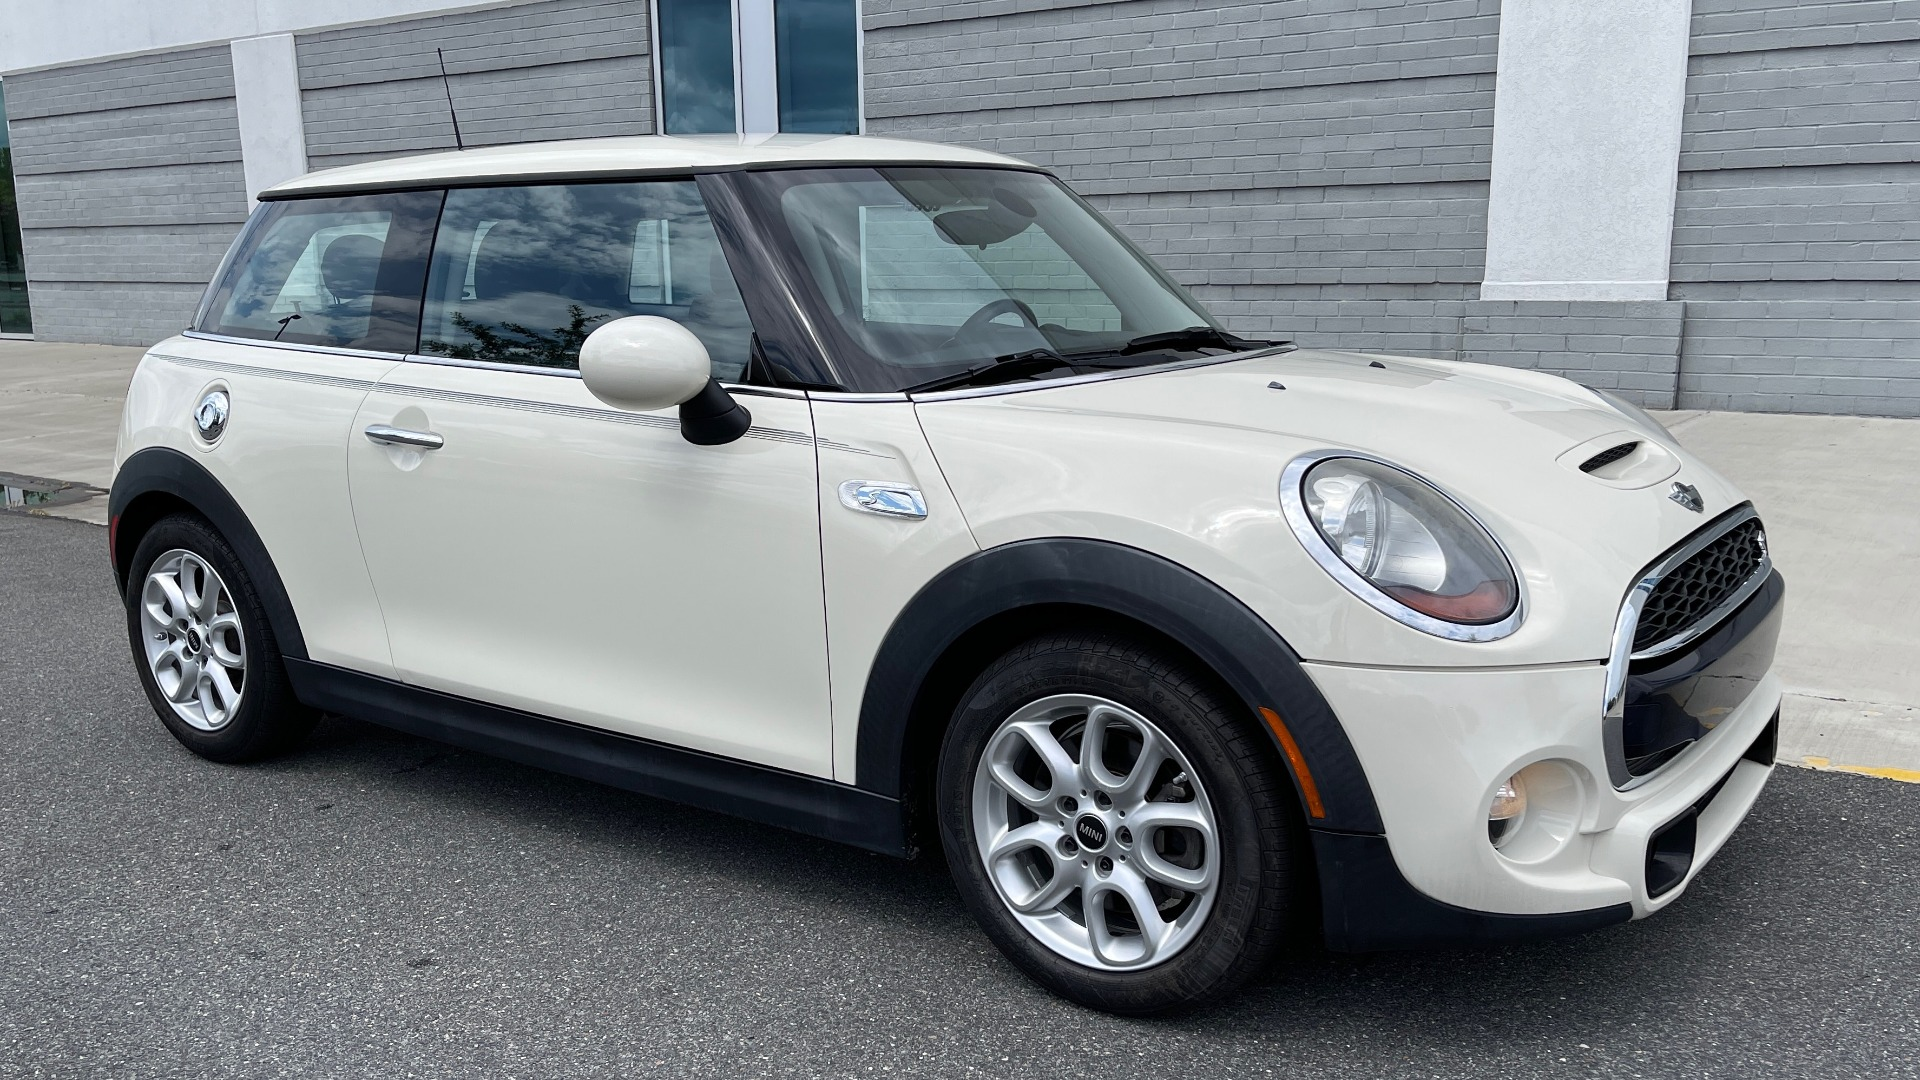 Used 2015 MINI COOPER HARDTOP S 2DR / 2.0L TURBO / FWD / 6-SPD MANUAL for sale $15,495 at Formula Imports in Charlotte NC 28227 5